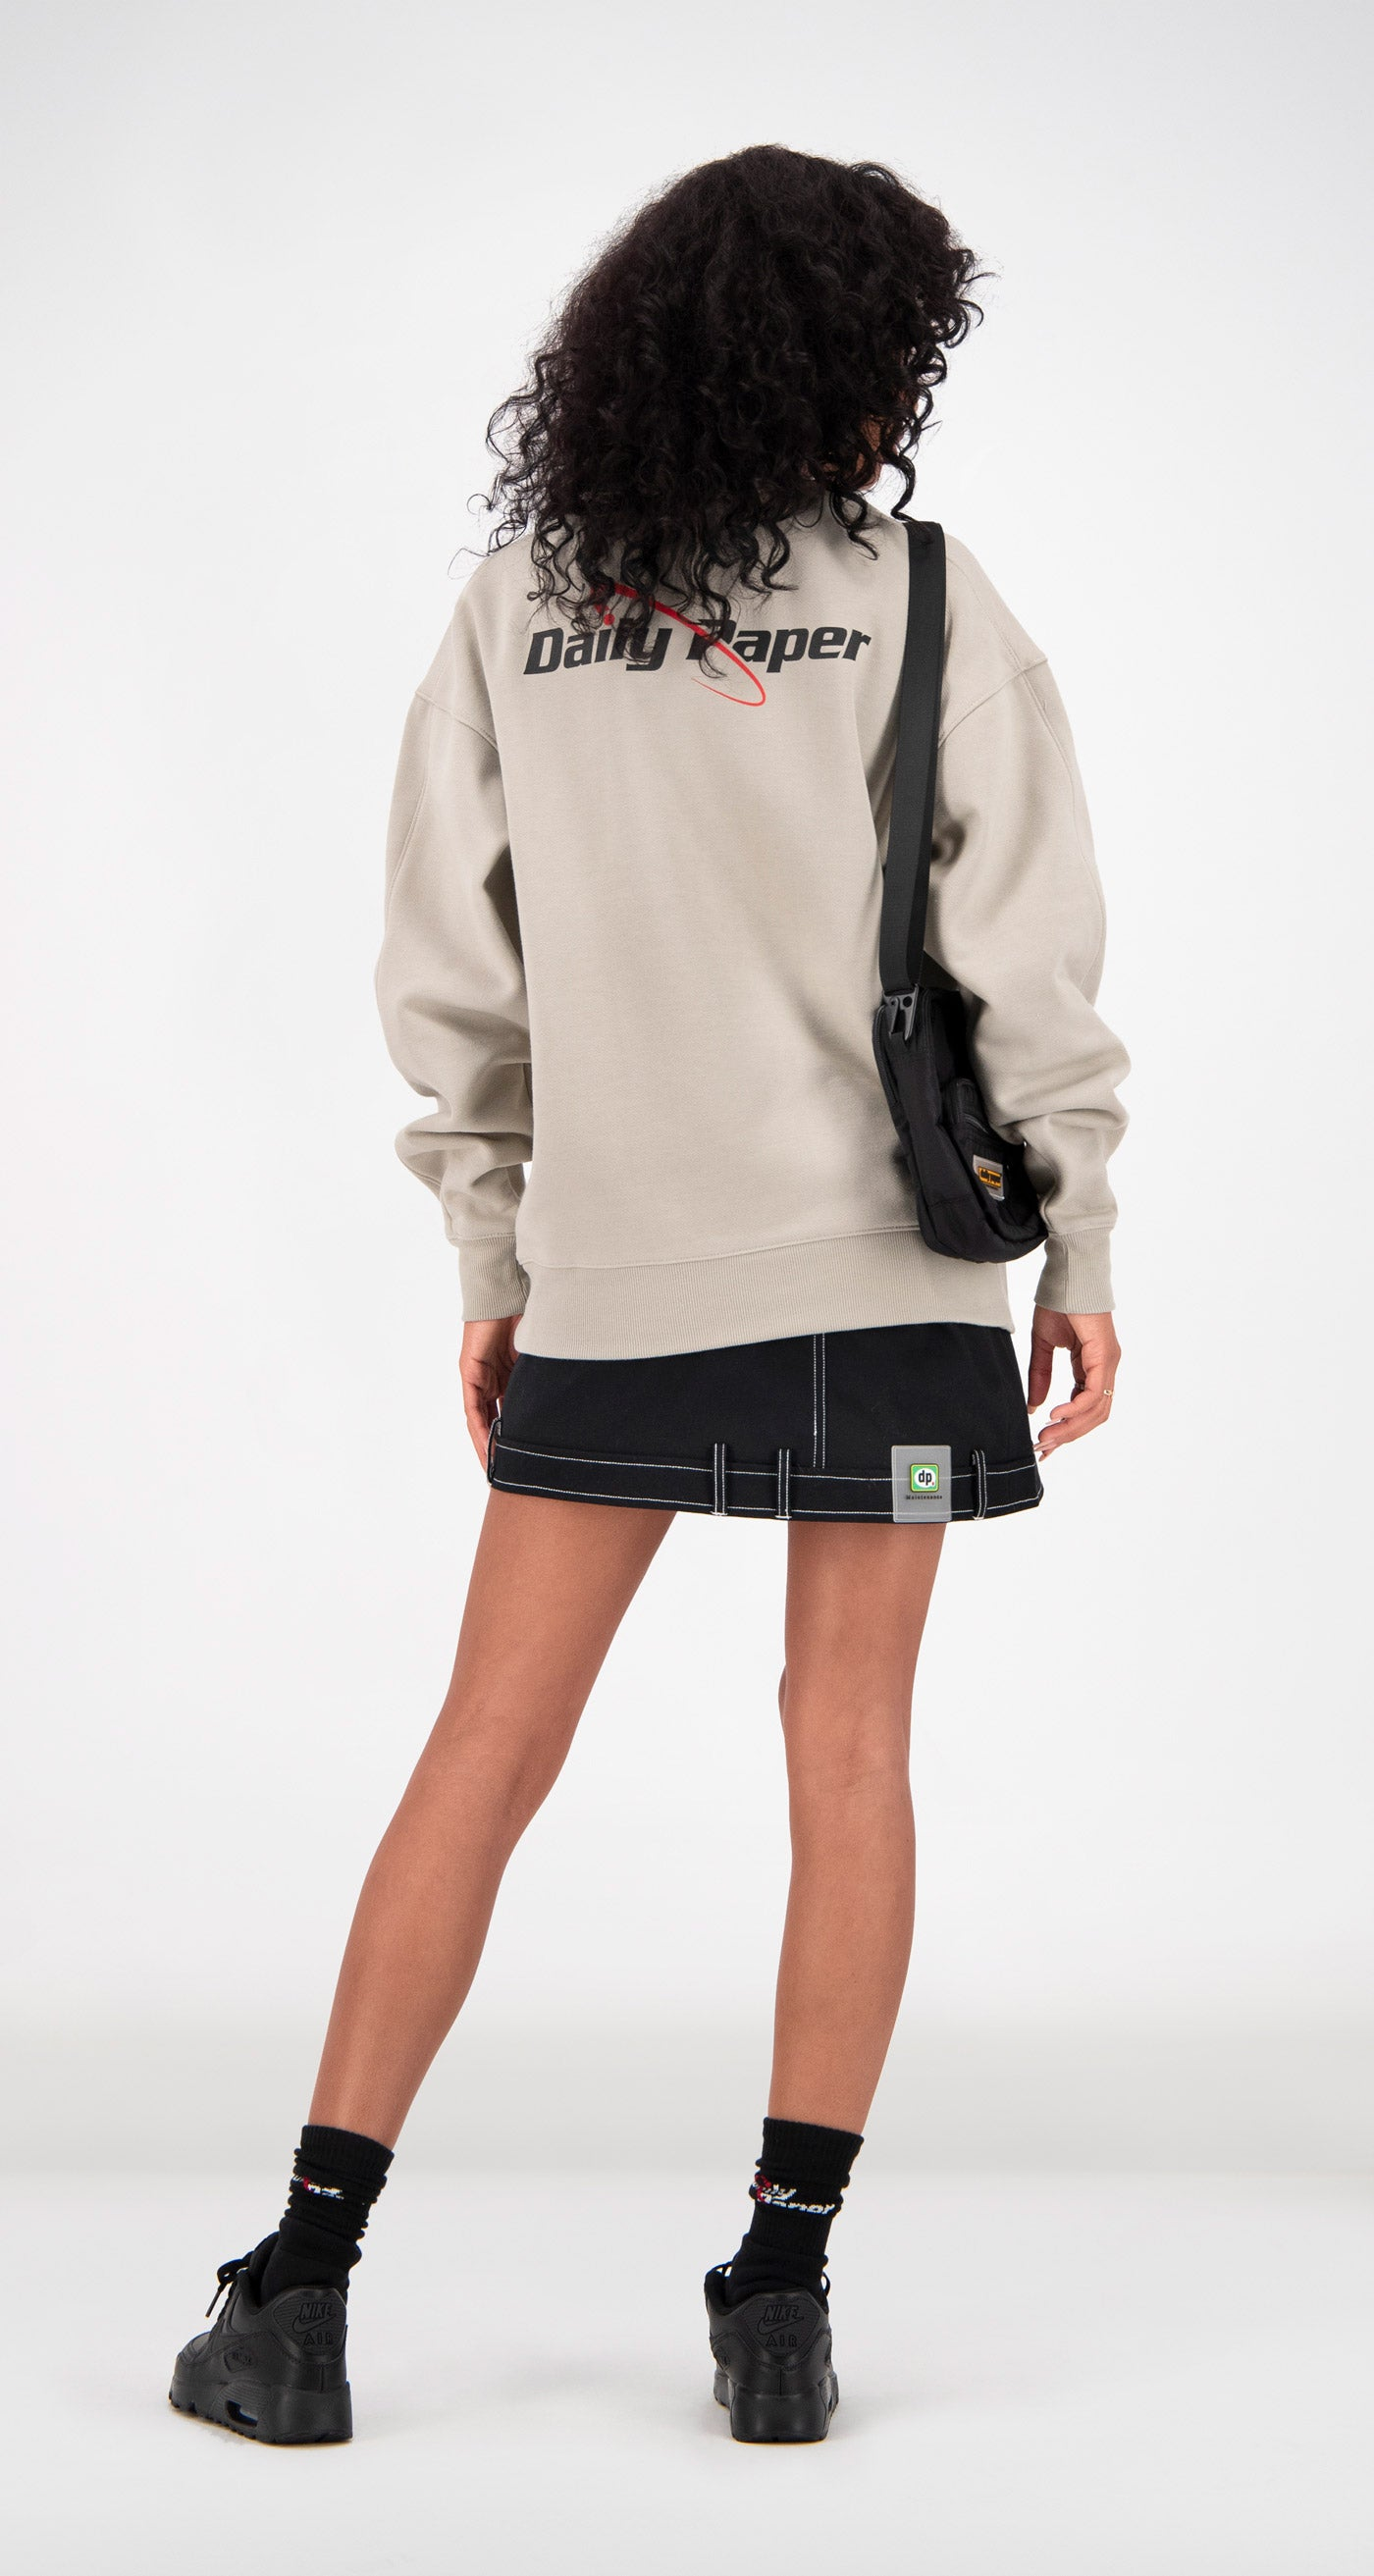 Daily Paper - Sand Fargo Sweater Women Rear